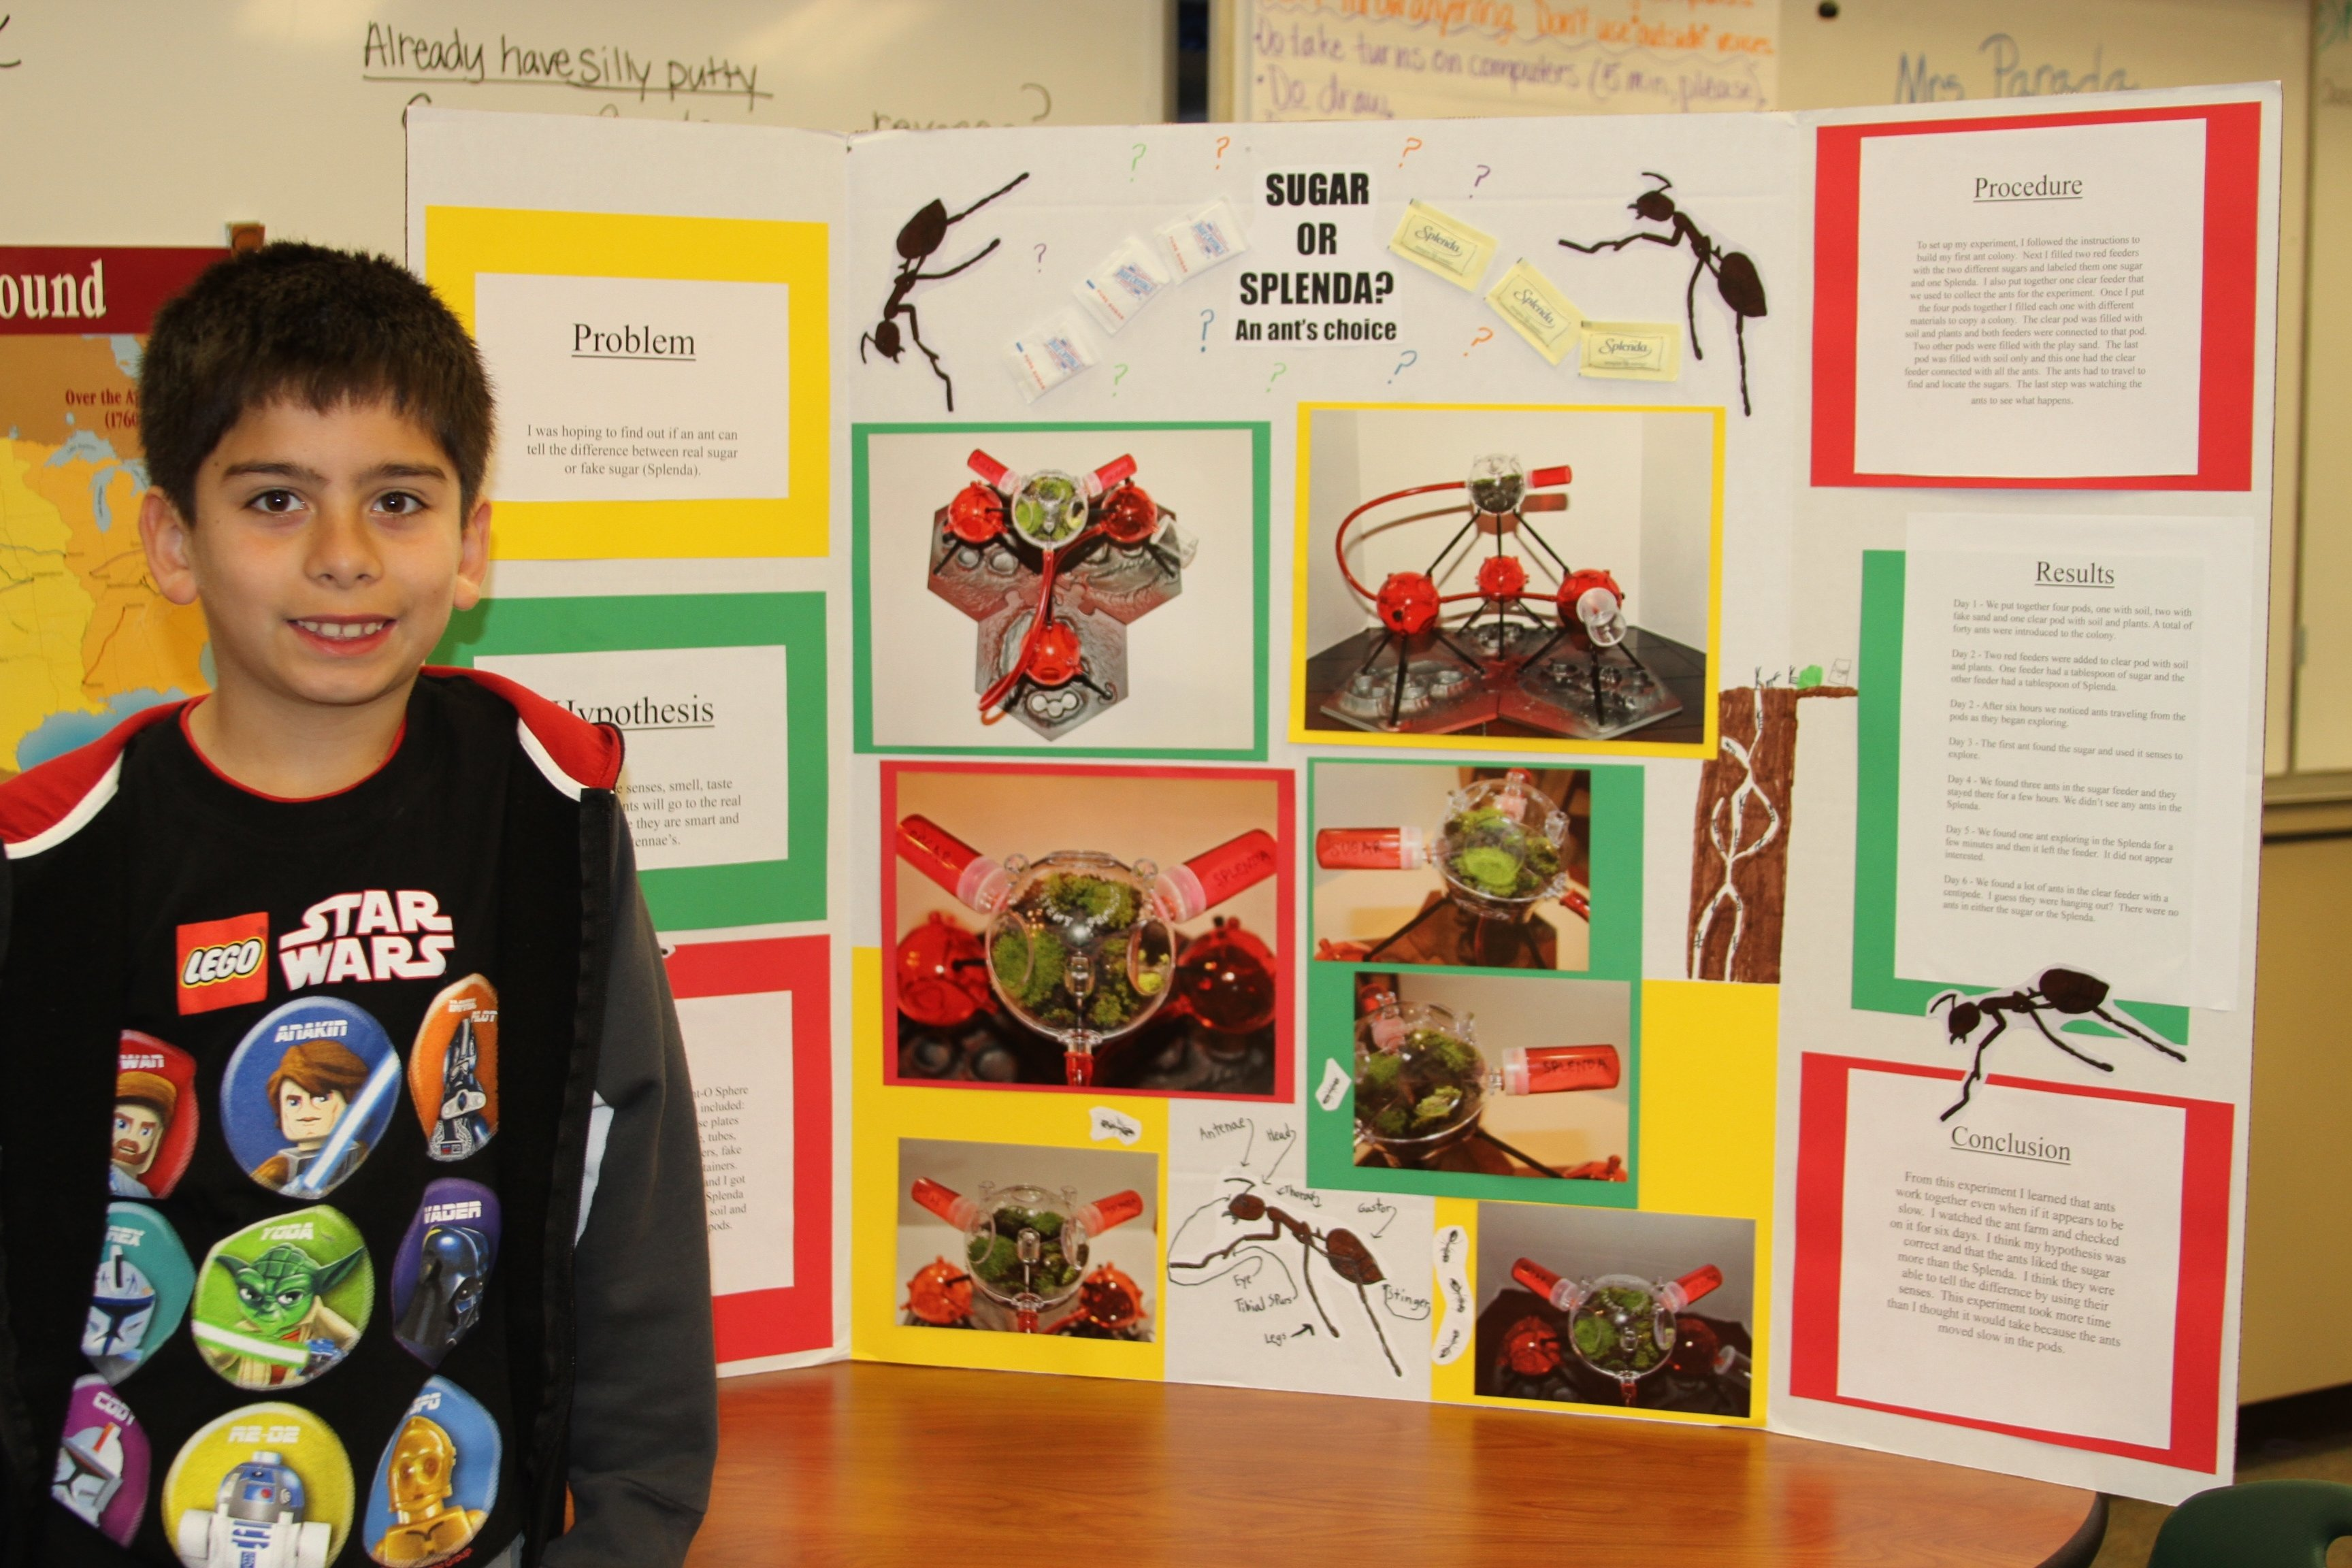 10 Pretty Elementary School Science Fair Project Ideas green elementary school science fair inspires student scientists 20 2020